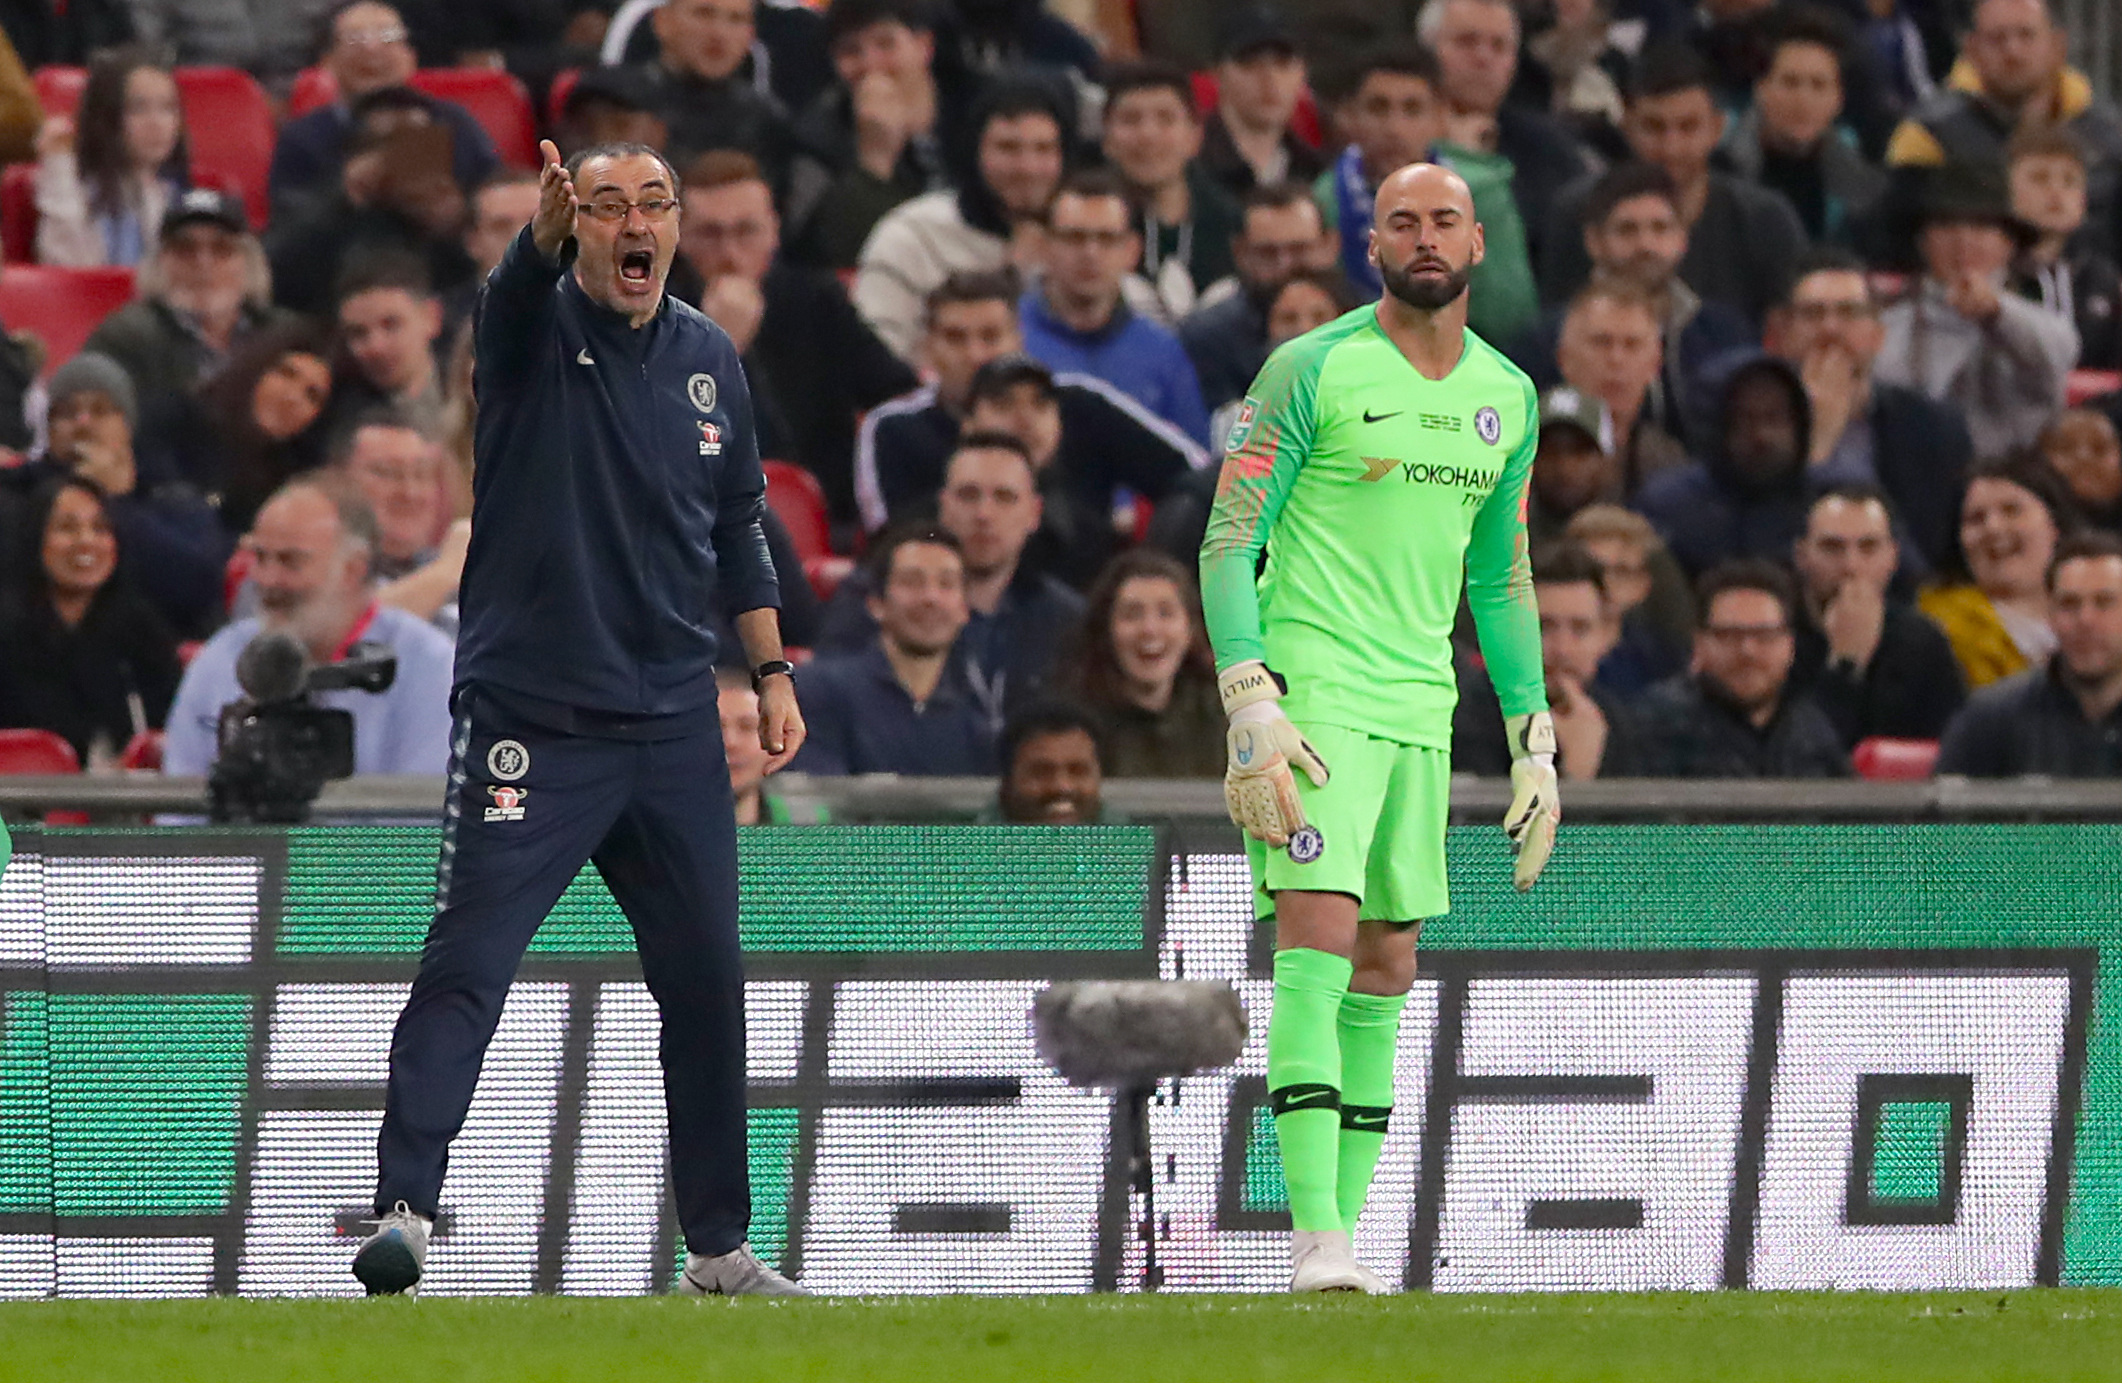 A lot has changed since Kepa refused to go off in that final. Image: PA Images